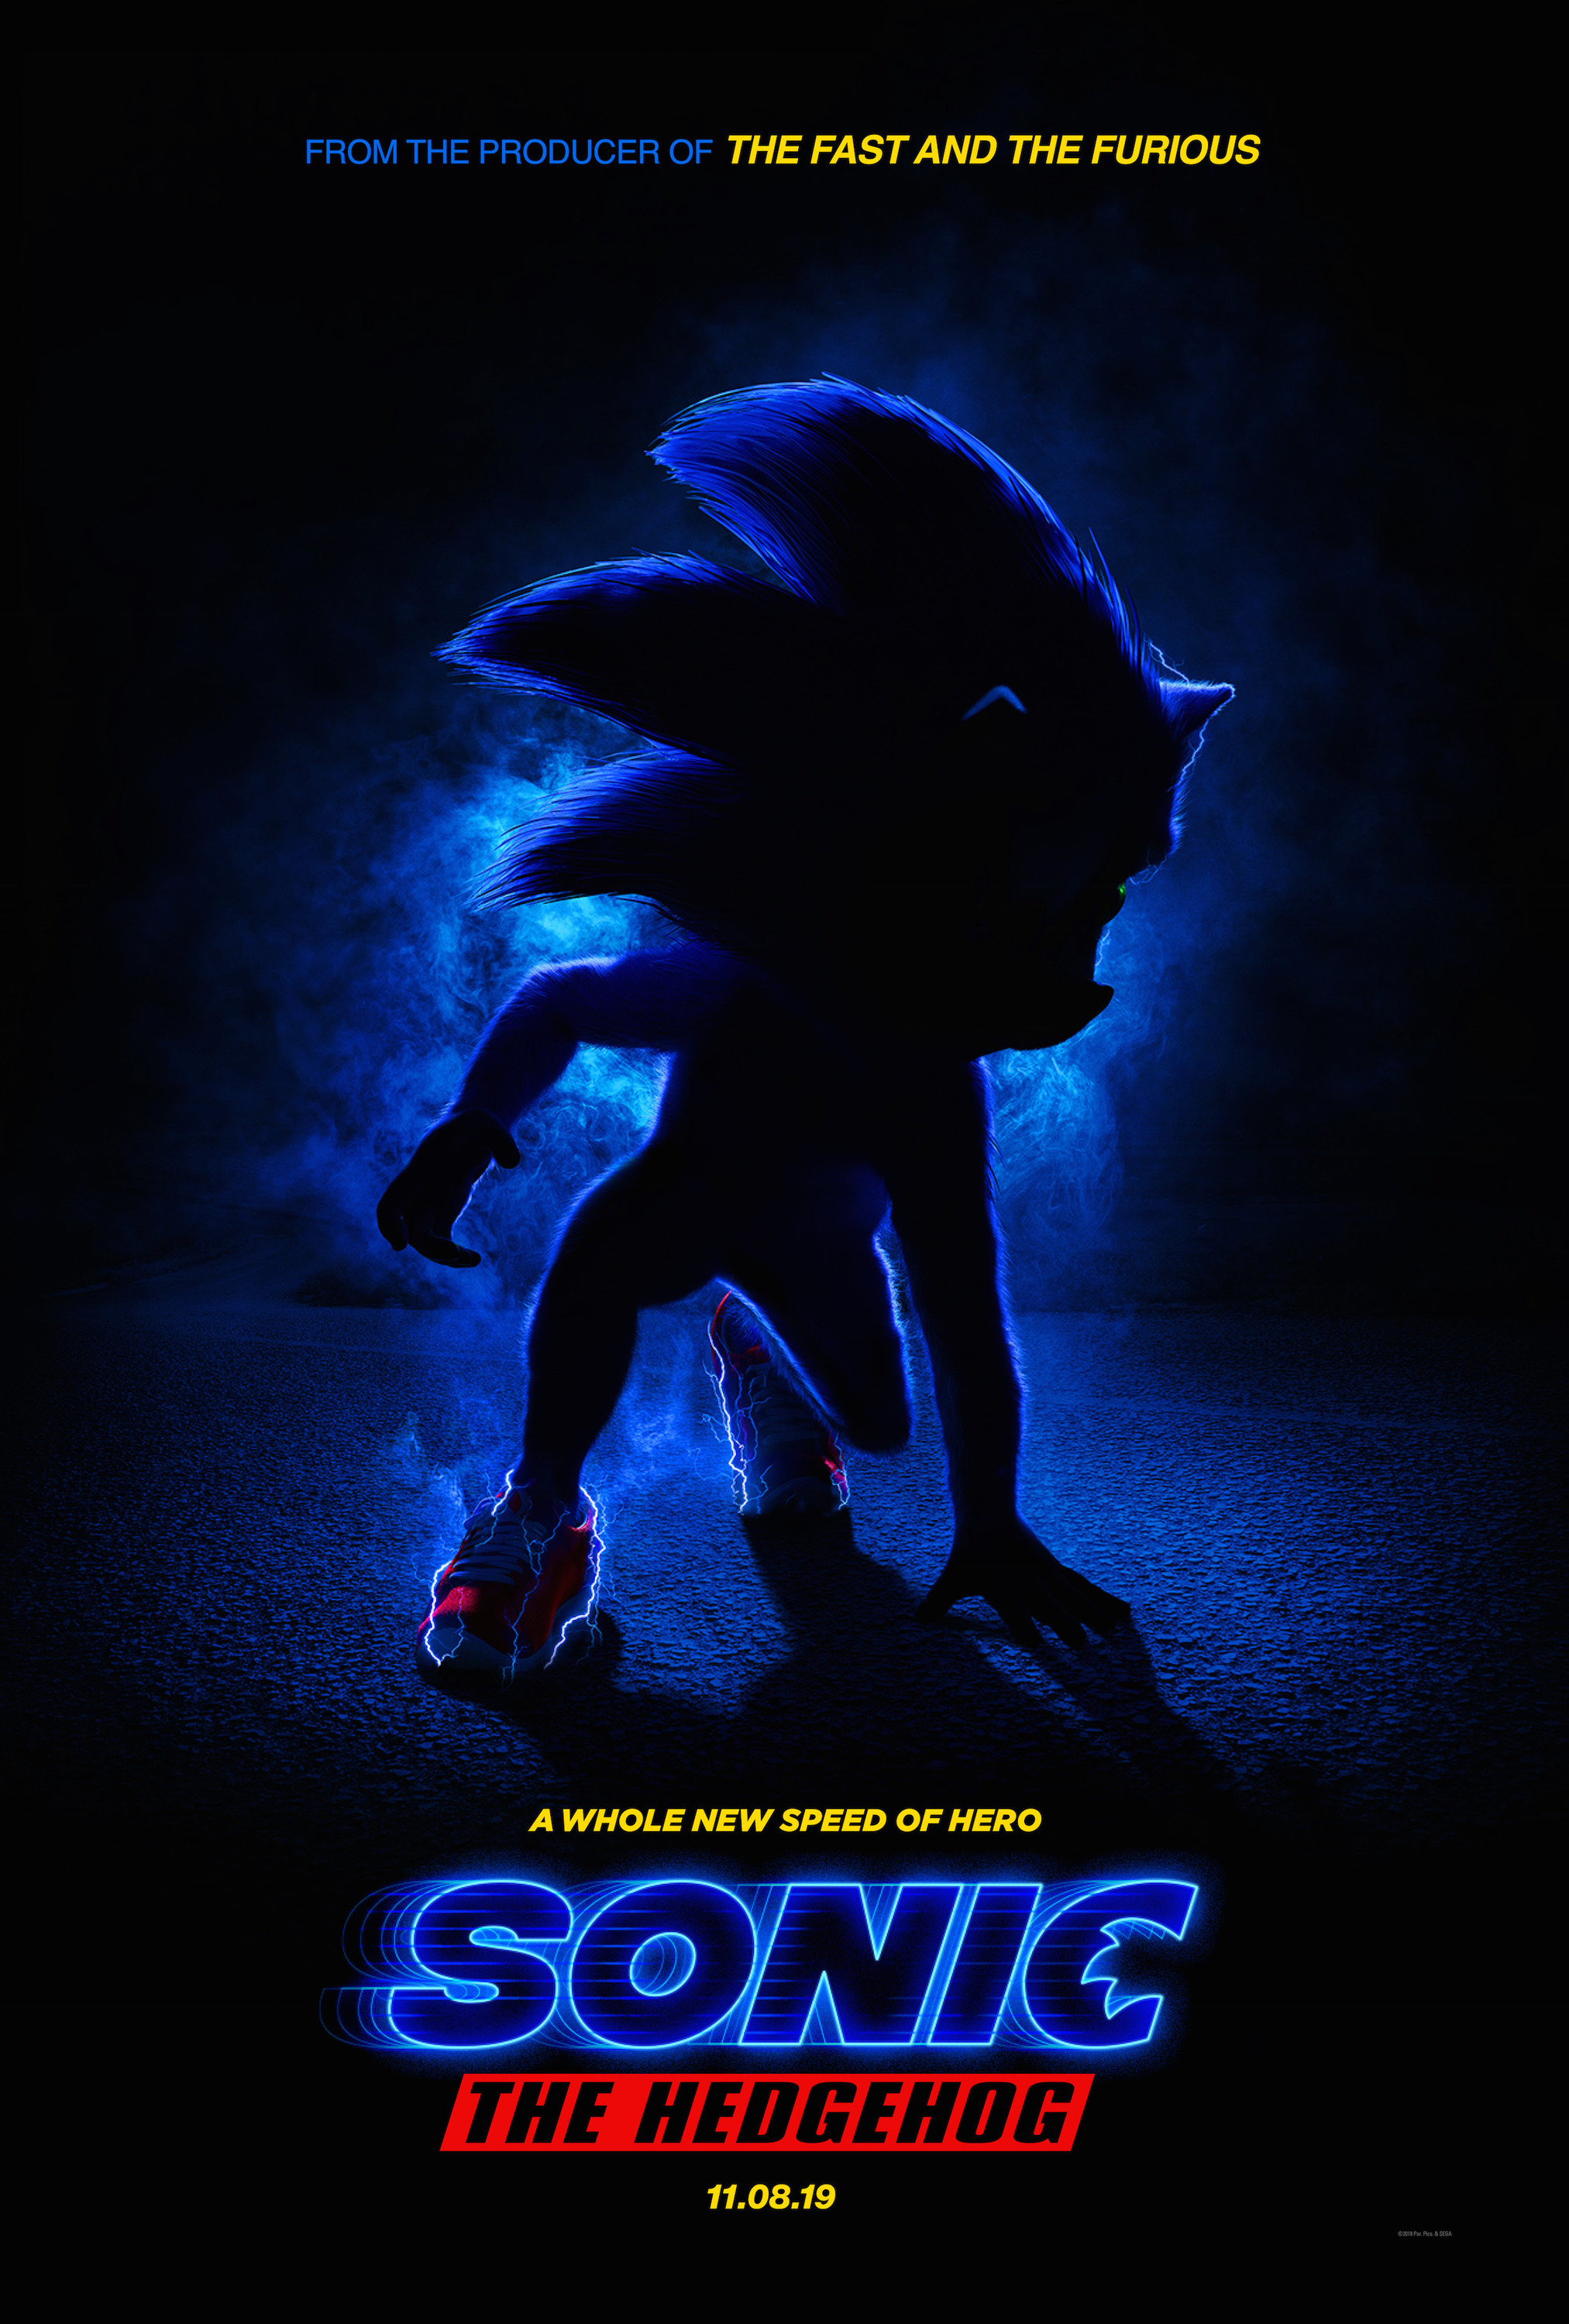 First Poster Of The Sonic The Hedgehog Movie Caused A Mixed